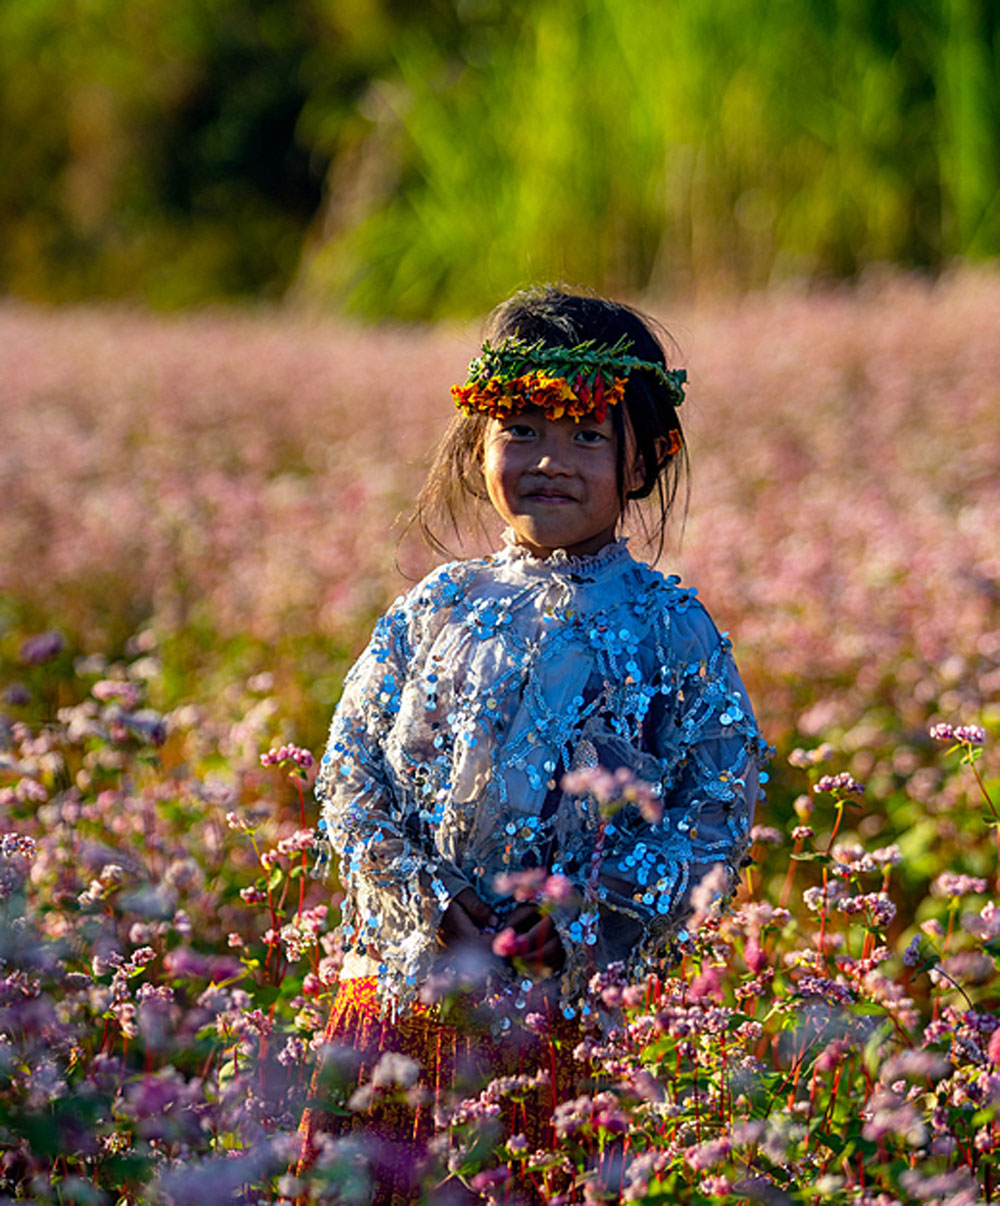 Come December, blooming flower season, Ha Giang province, yellow cabbage, peach blossoms, buckwheat flowers,